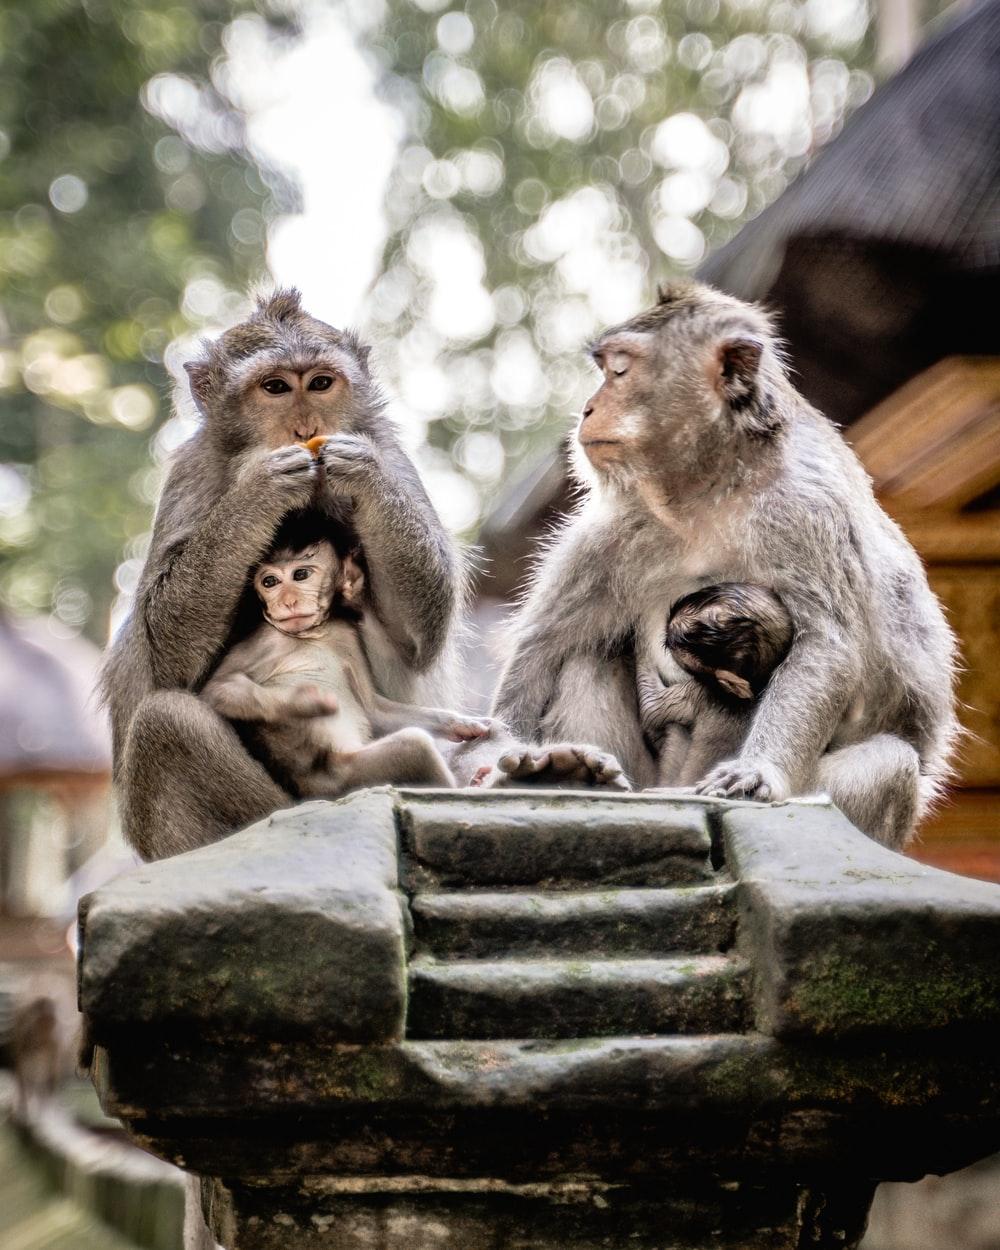 two monkeys sitting on gray concrete bench during daytime